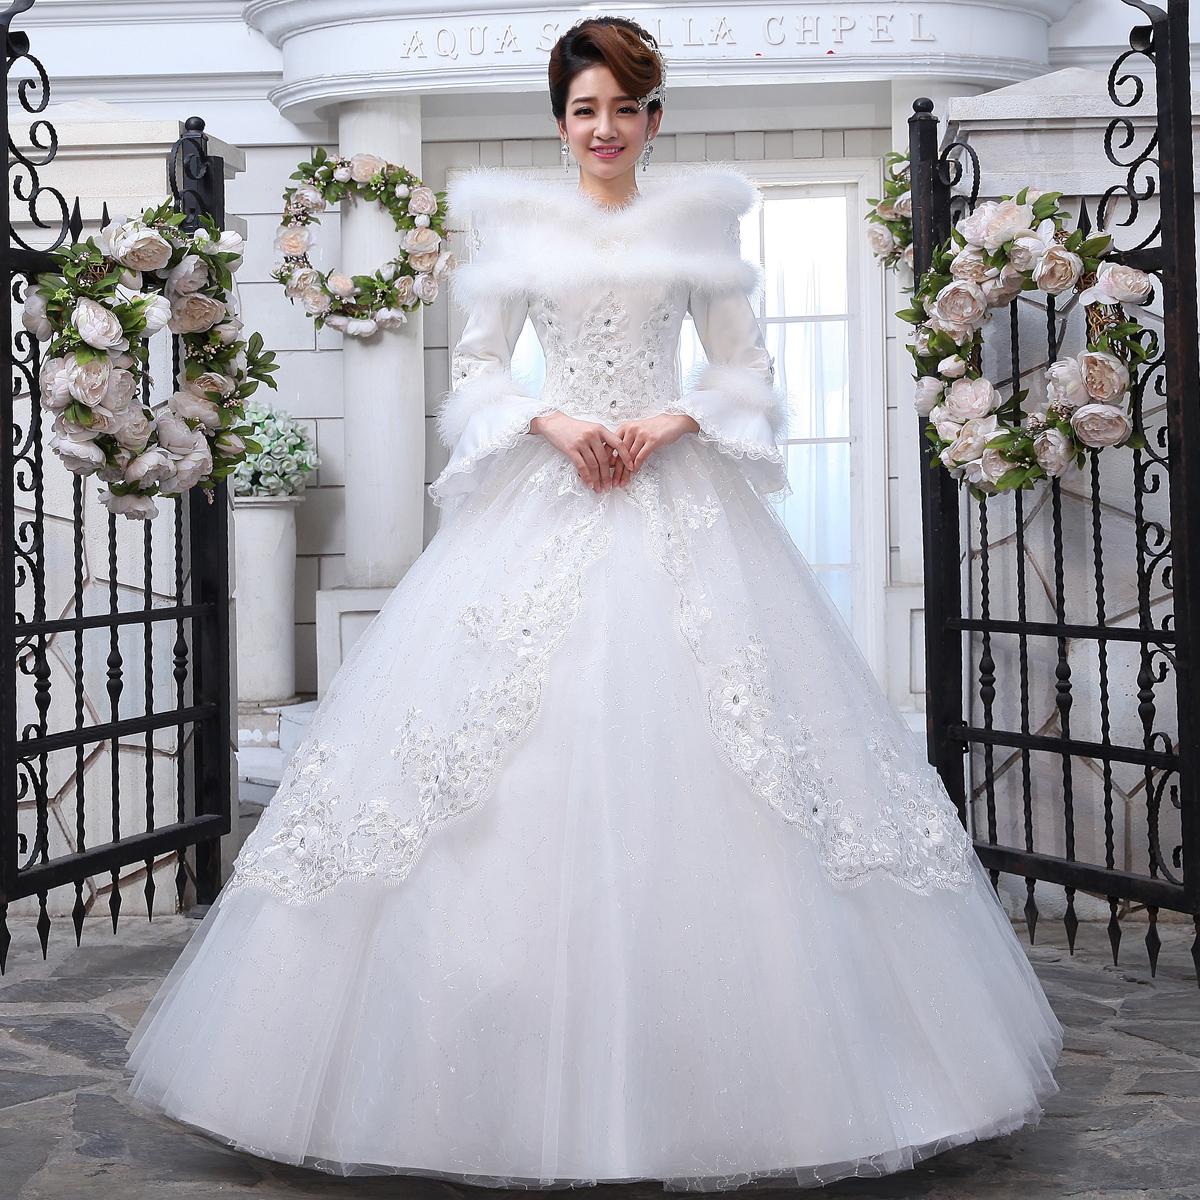 Winter new arrival 2013 thickening fur collar winter long-sleeve lace cotton winter wedding dress long-sleeve wedding dress(China (Mainland))